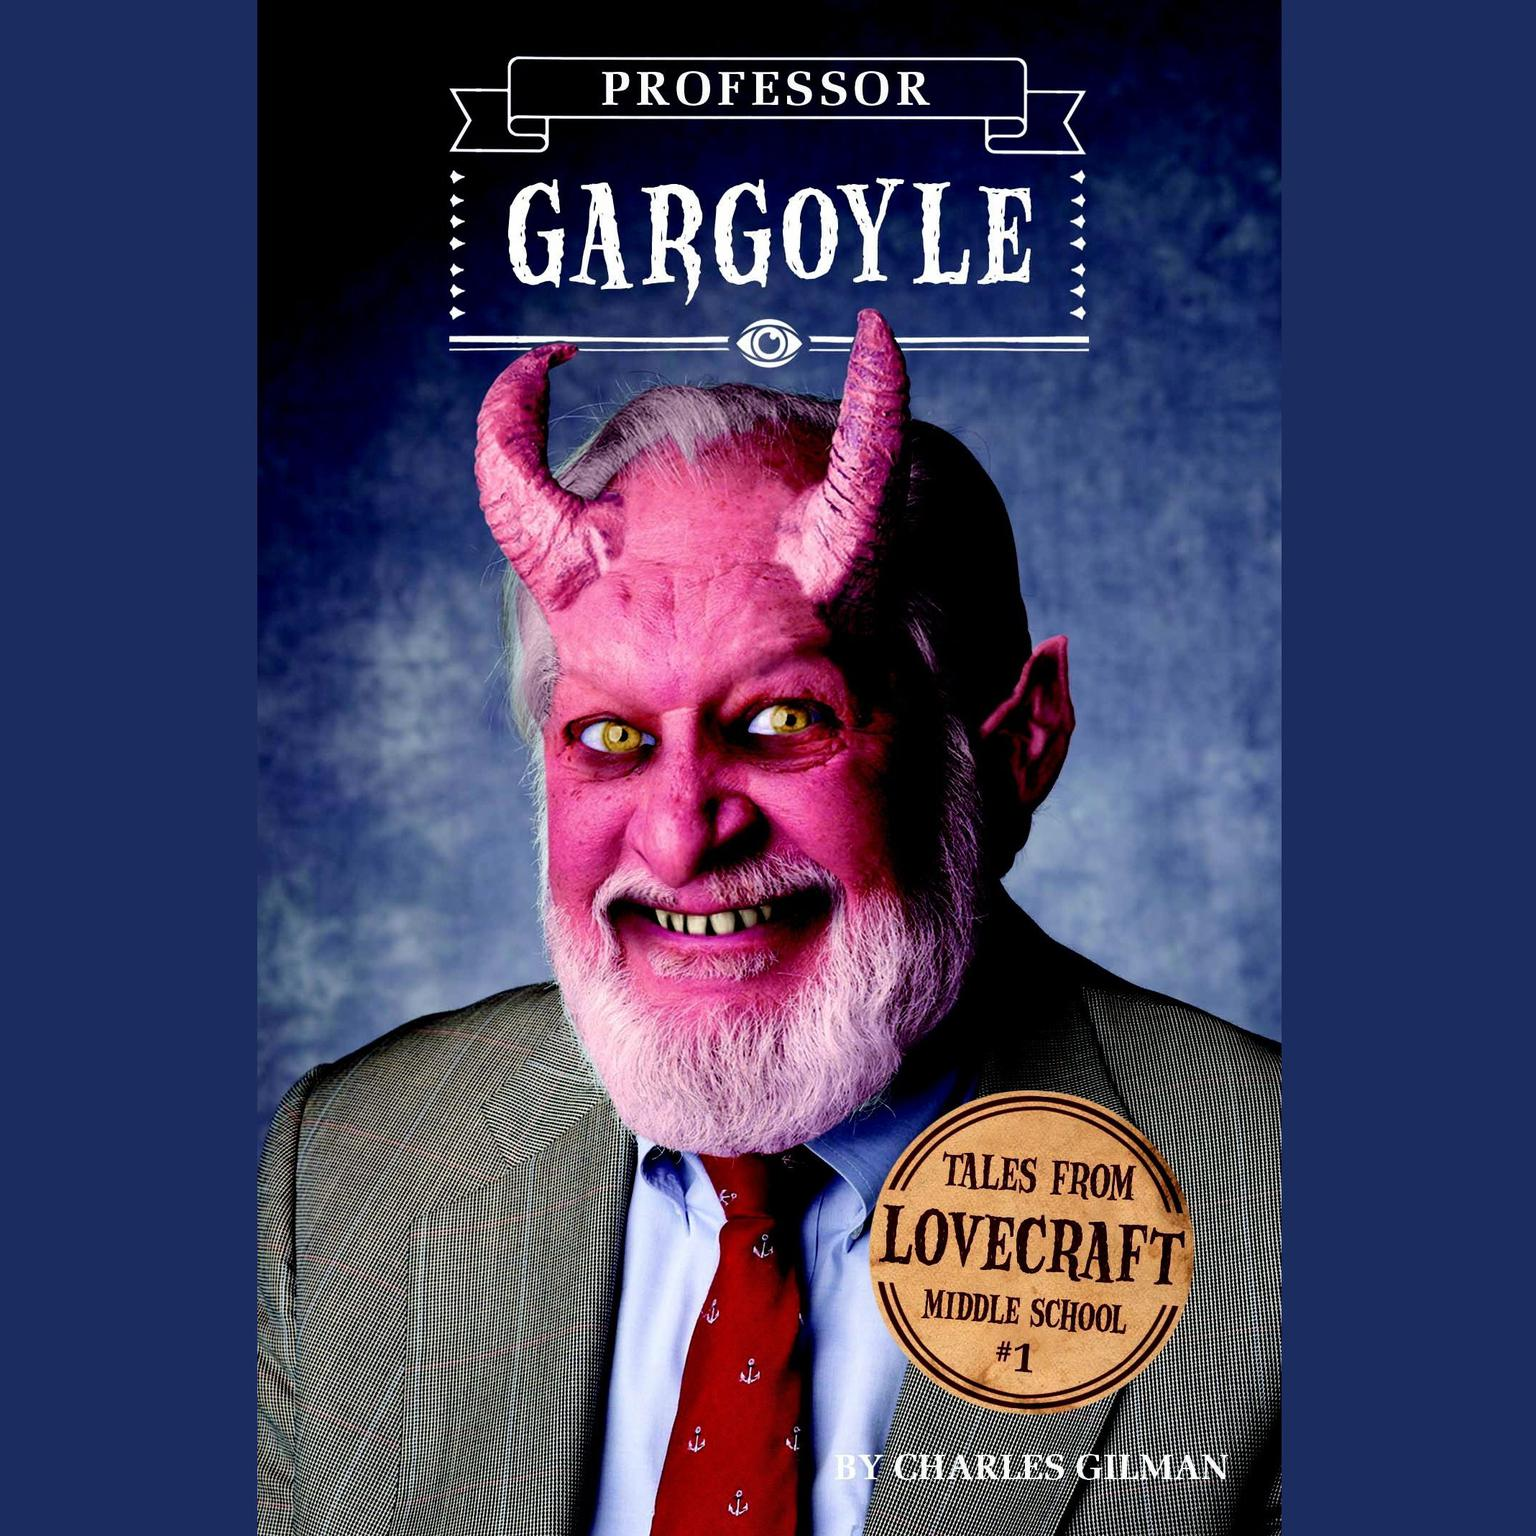 Printable Tales from Lovecraft Middle School #1: Professor Gargoyle Audiobook Cover Art